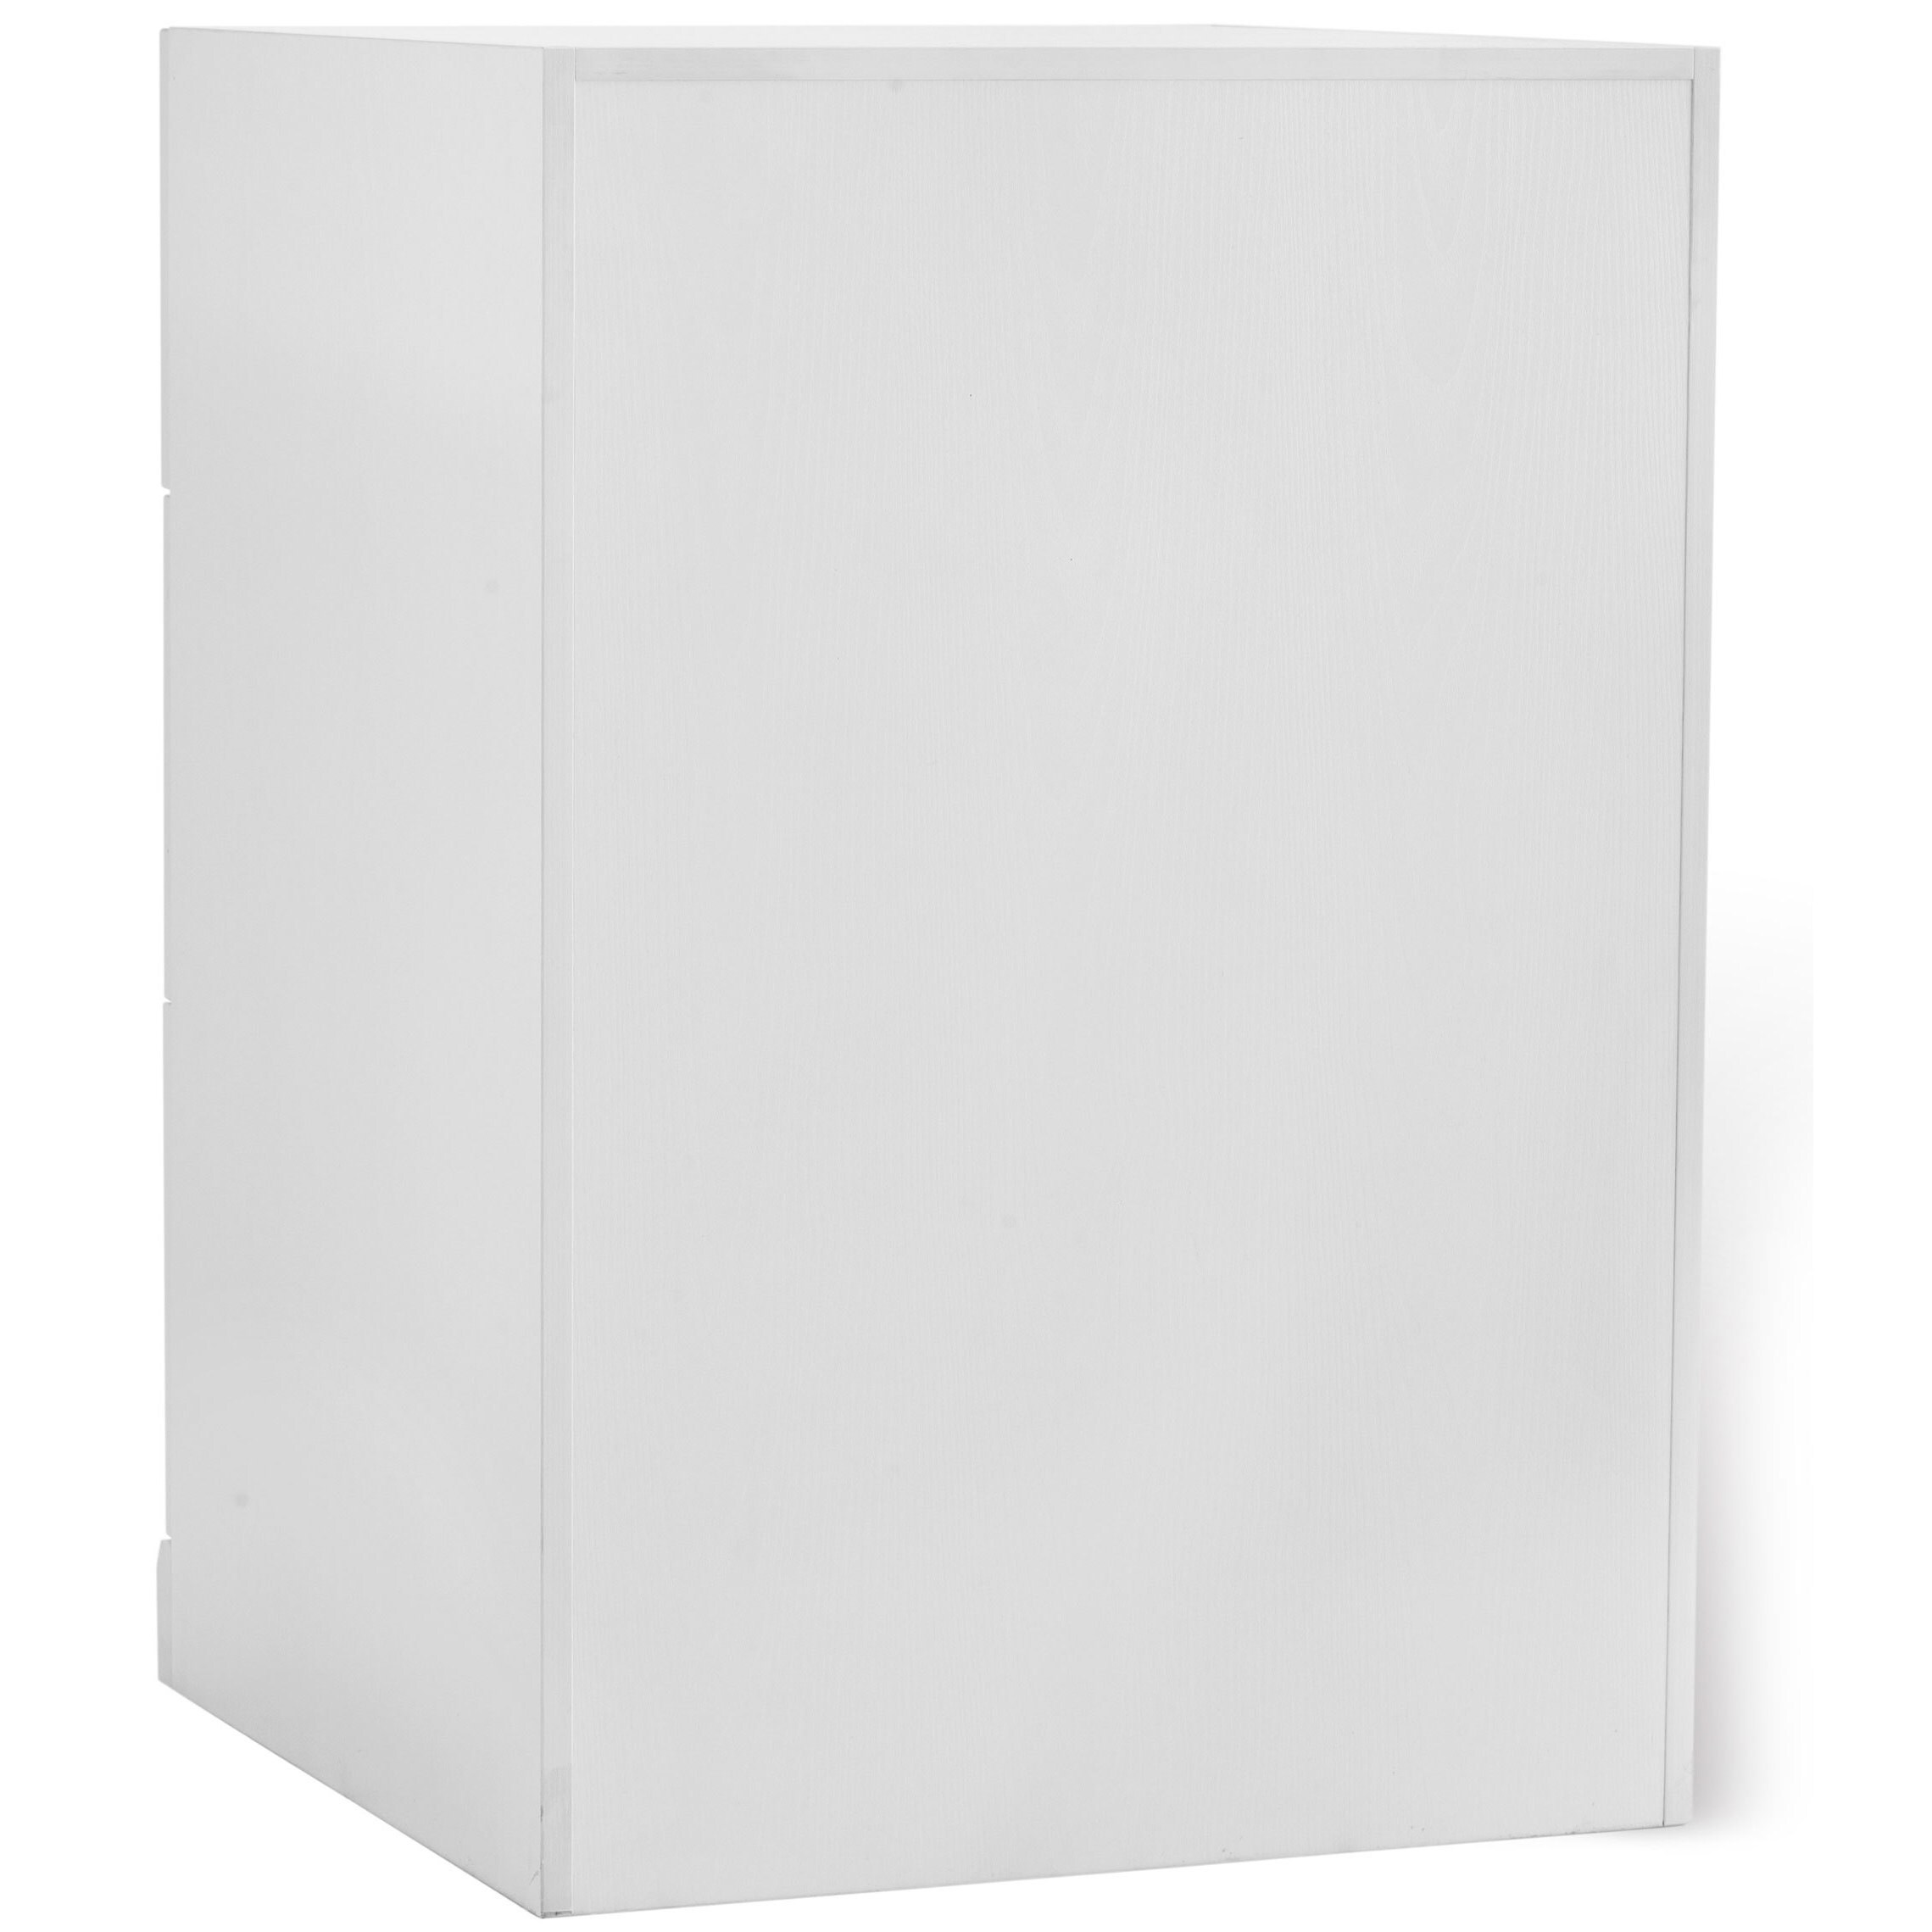 NewAge Products Home Bar 24-inch high x 24-inch wide 3-drawer Cabinet White  Shaker Style